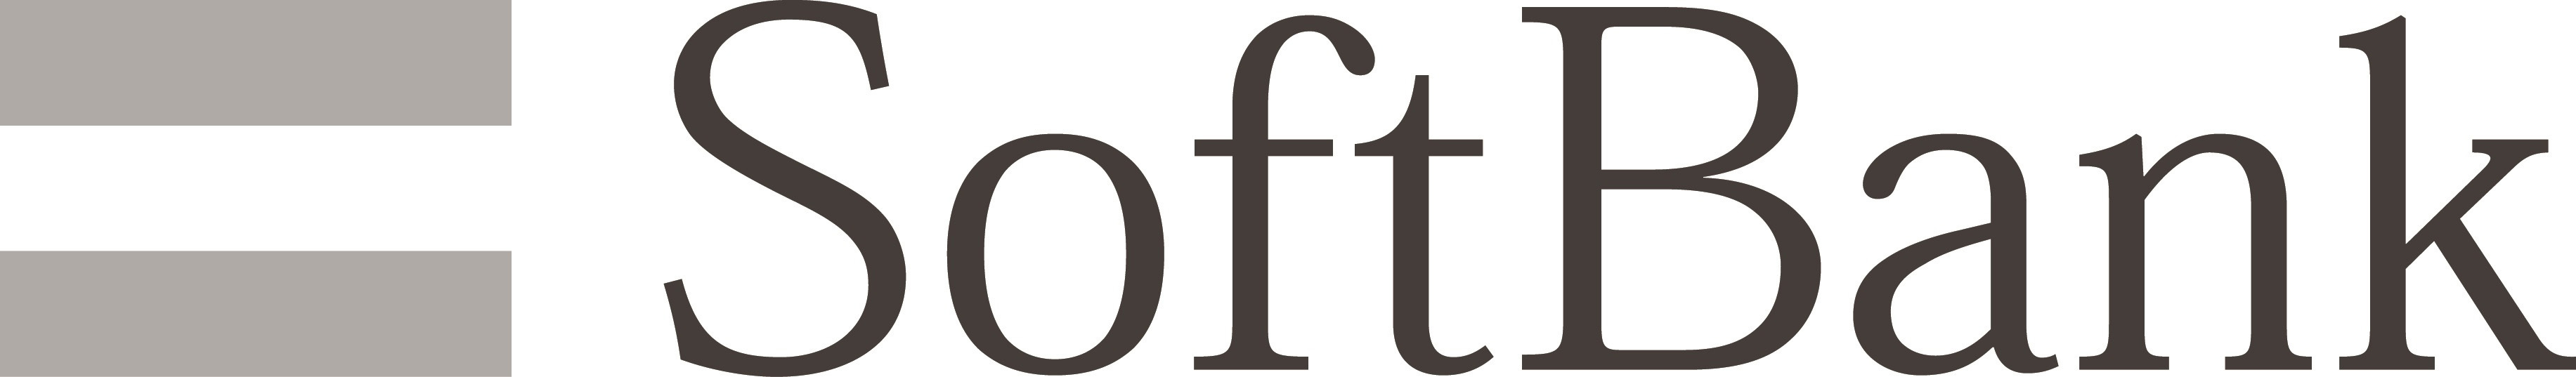 OSIsoft Announces SoftBank Investment | Business Wire